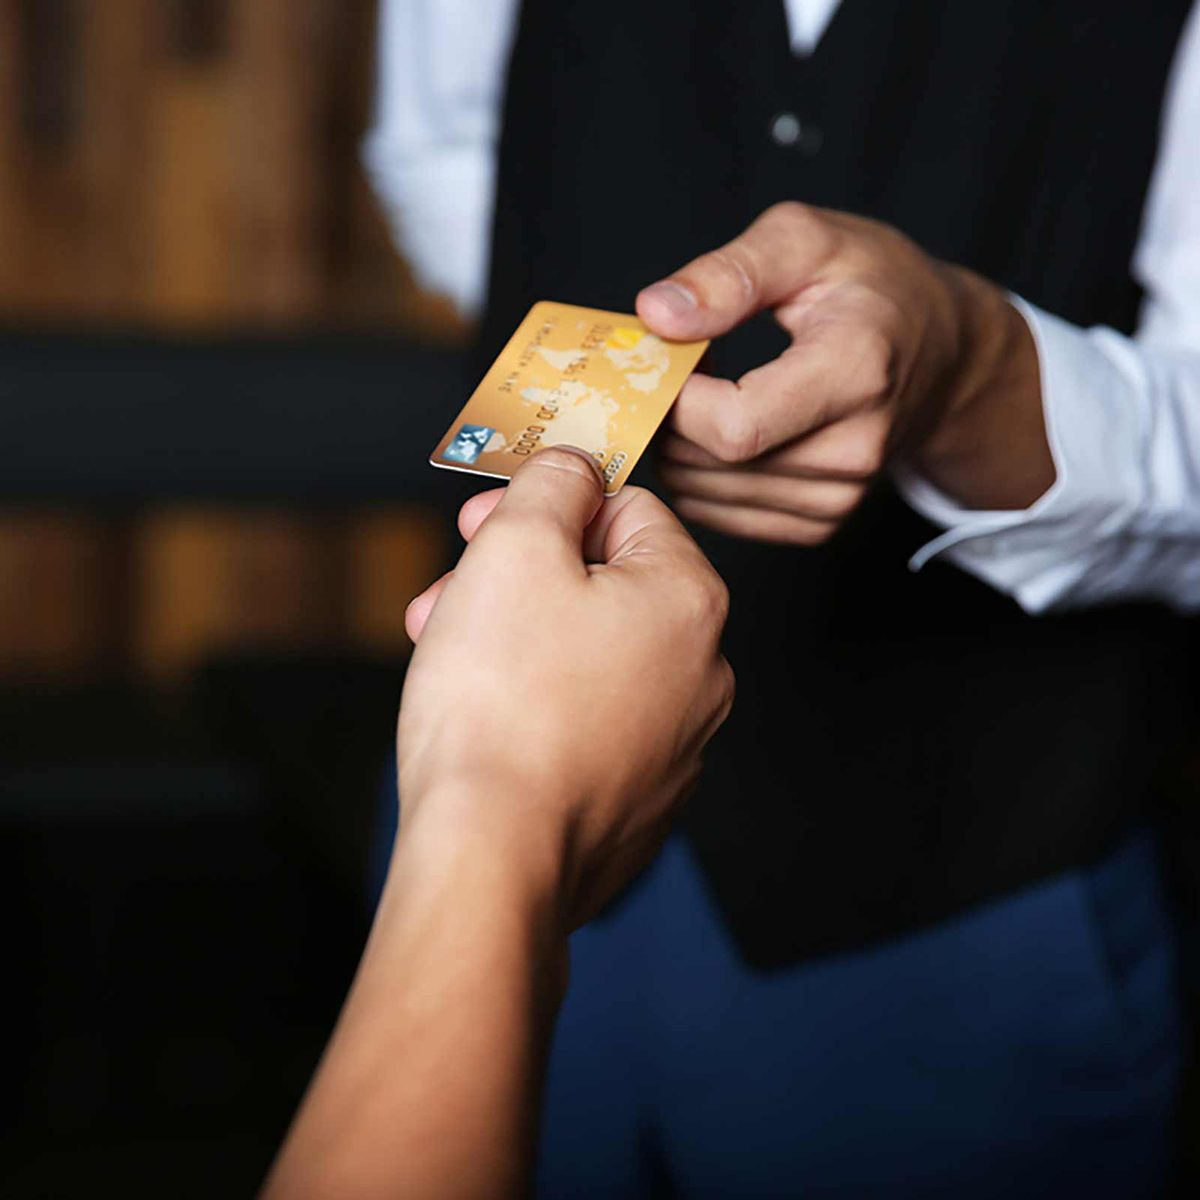 Handing a credit card to a waiter